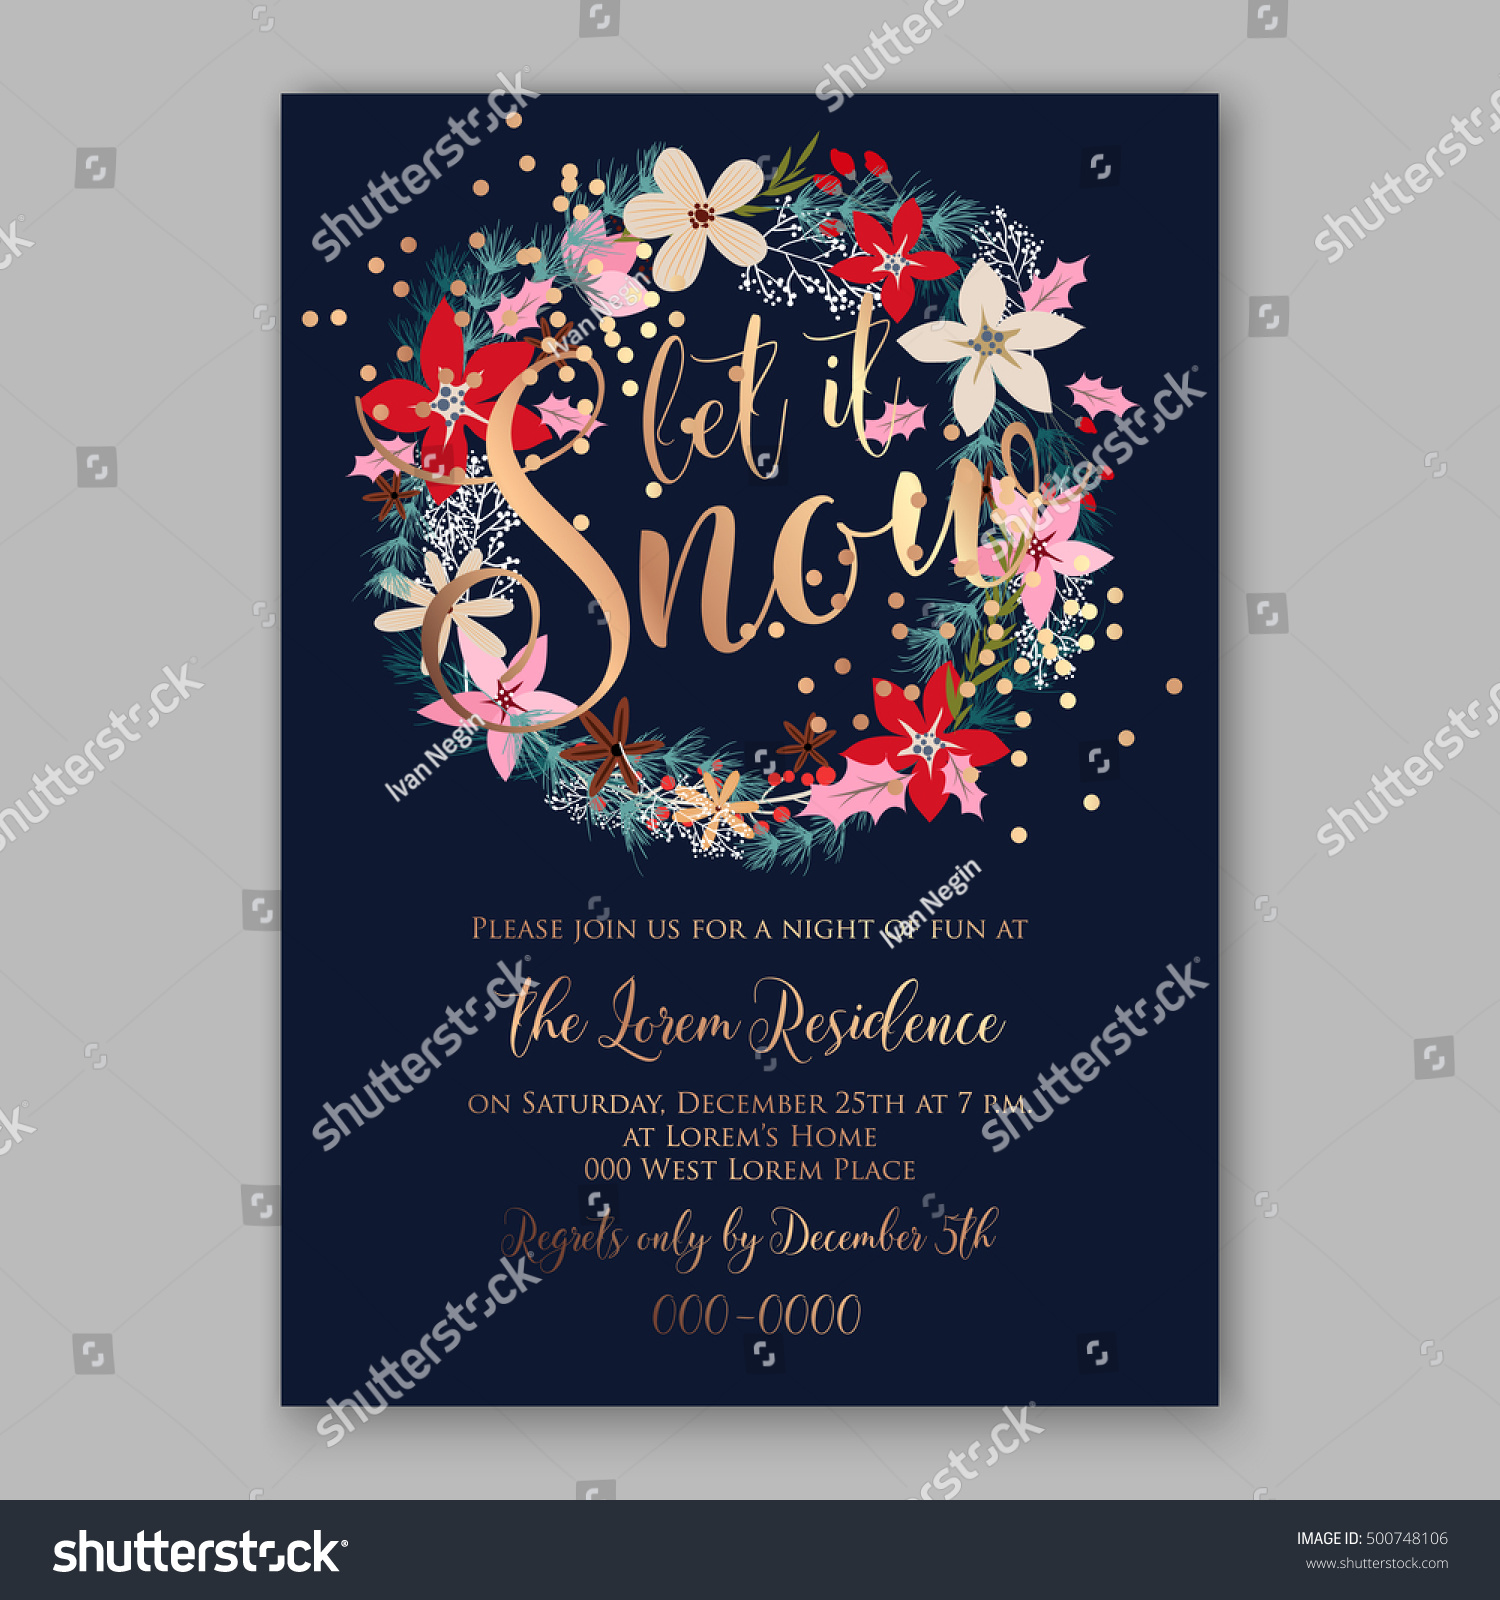 christmas party invitation poster template r tic stock vector christmas party invitation poster template r tic winter wreath of red poinsettia flowers pine and